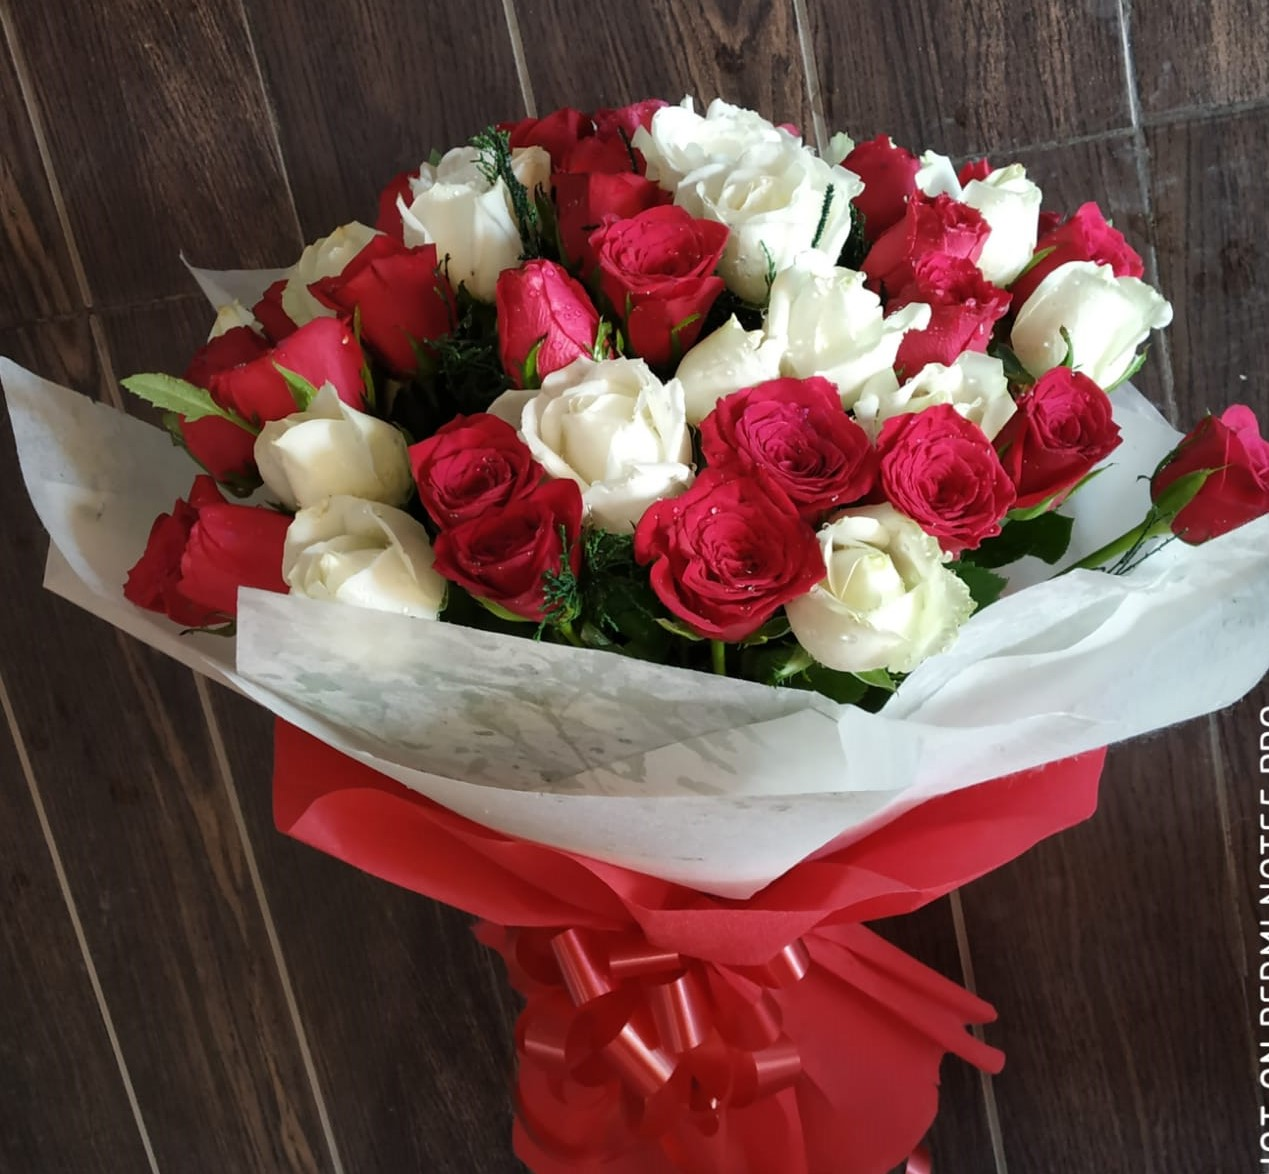 Flowers Delivery in Sector 42 GurgaonRed & White Roses in Duble Layer Packing